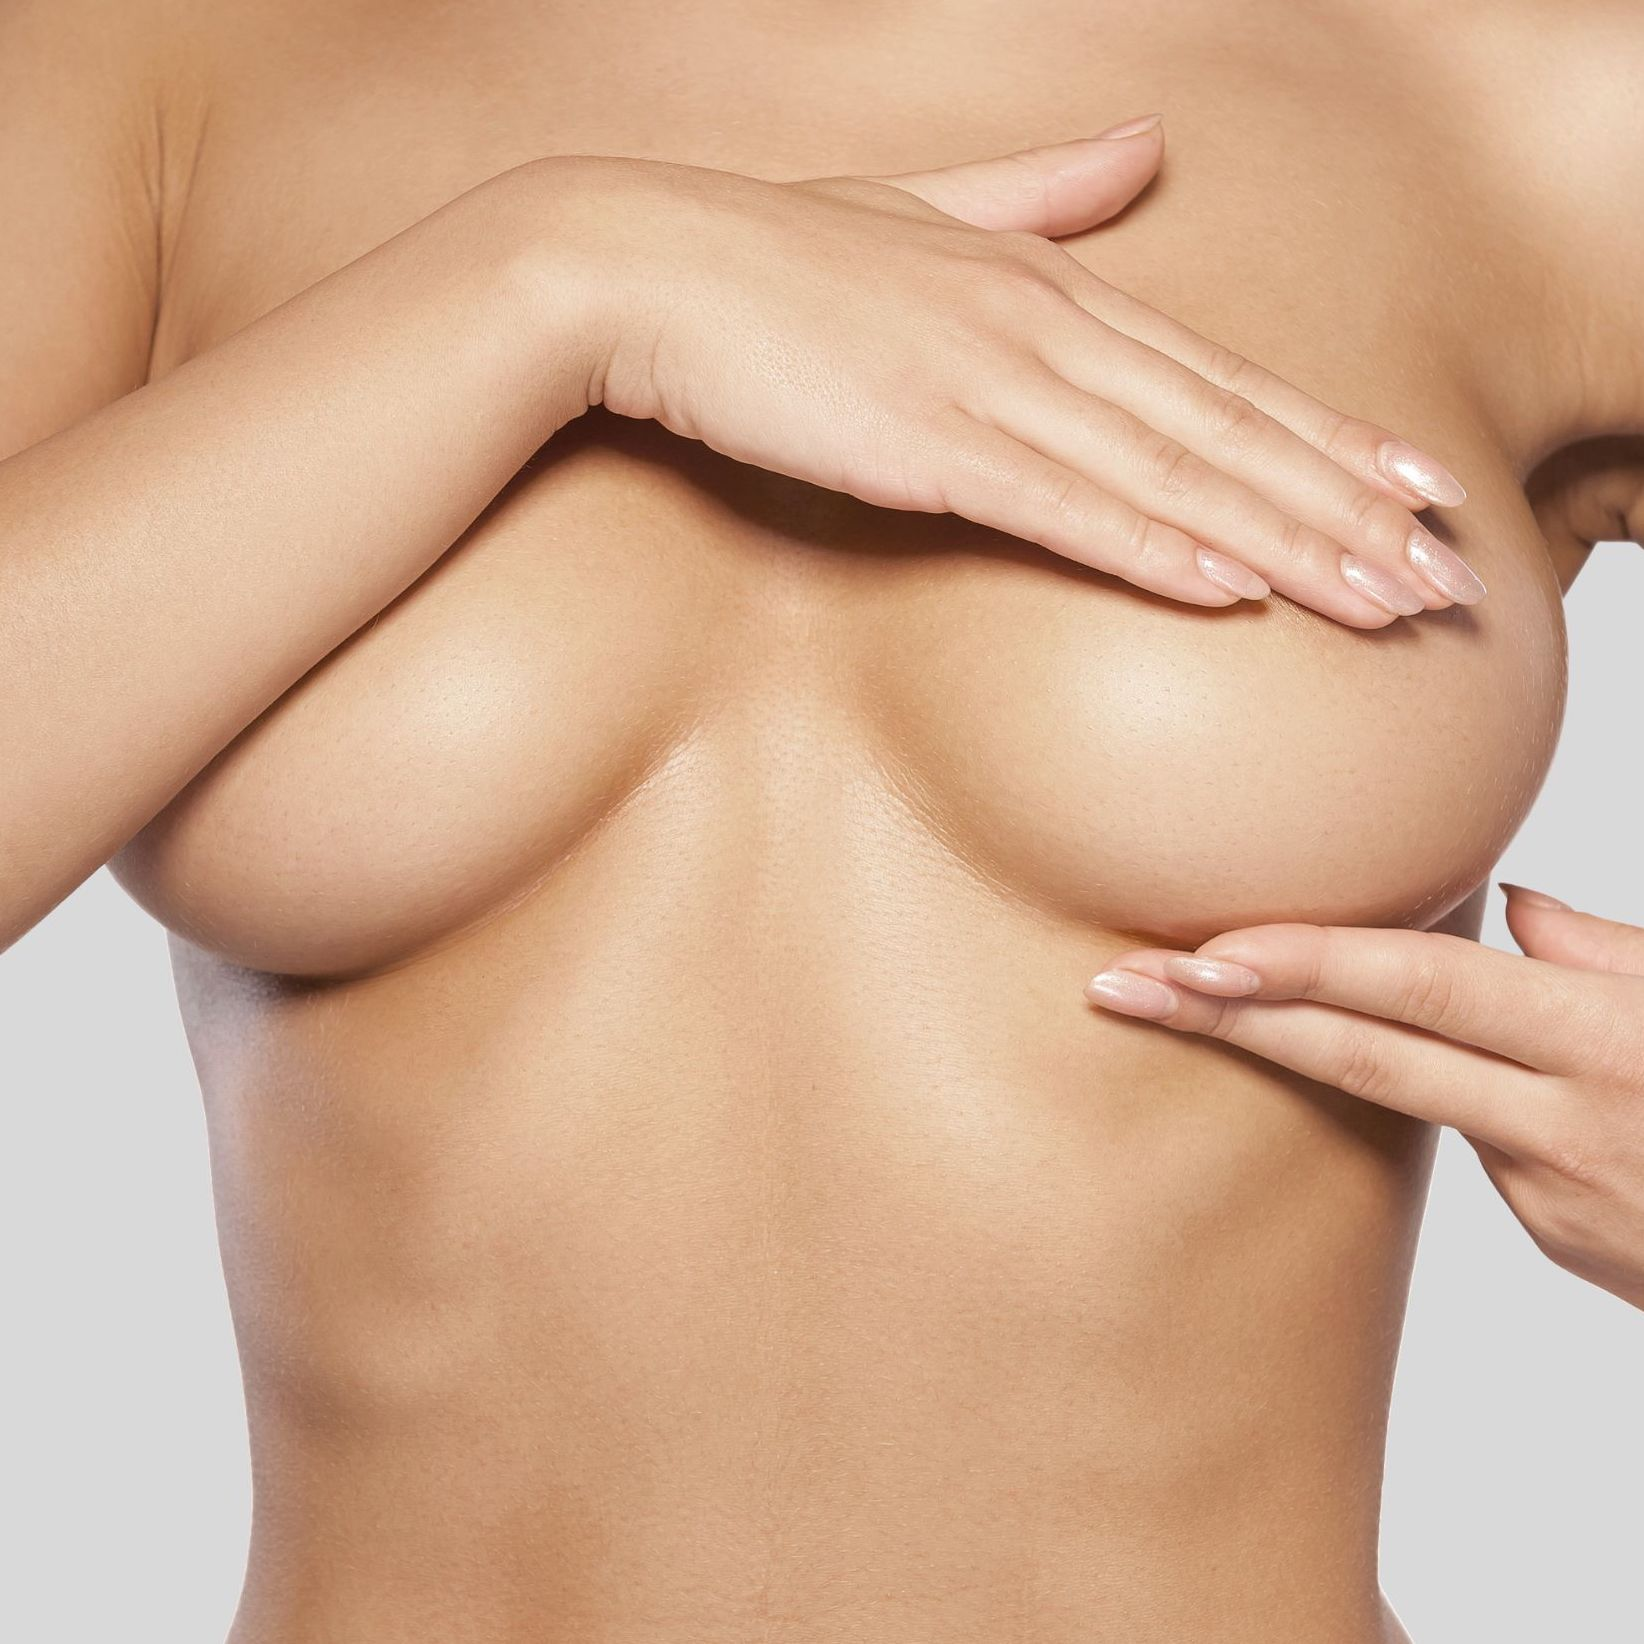 breast augmentation - Through the insertion of a silicone implant, this procedure enlarges small or sagging breasts due to pregnancy, ageing or weight-loss.